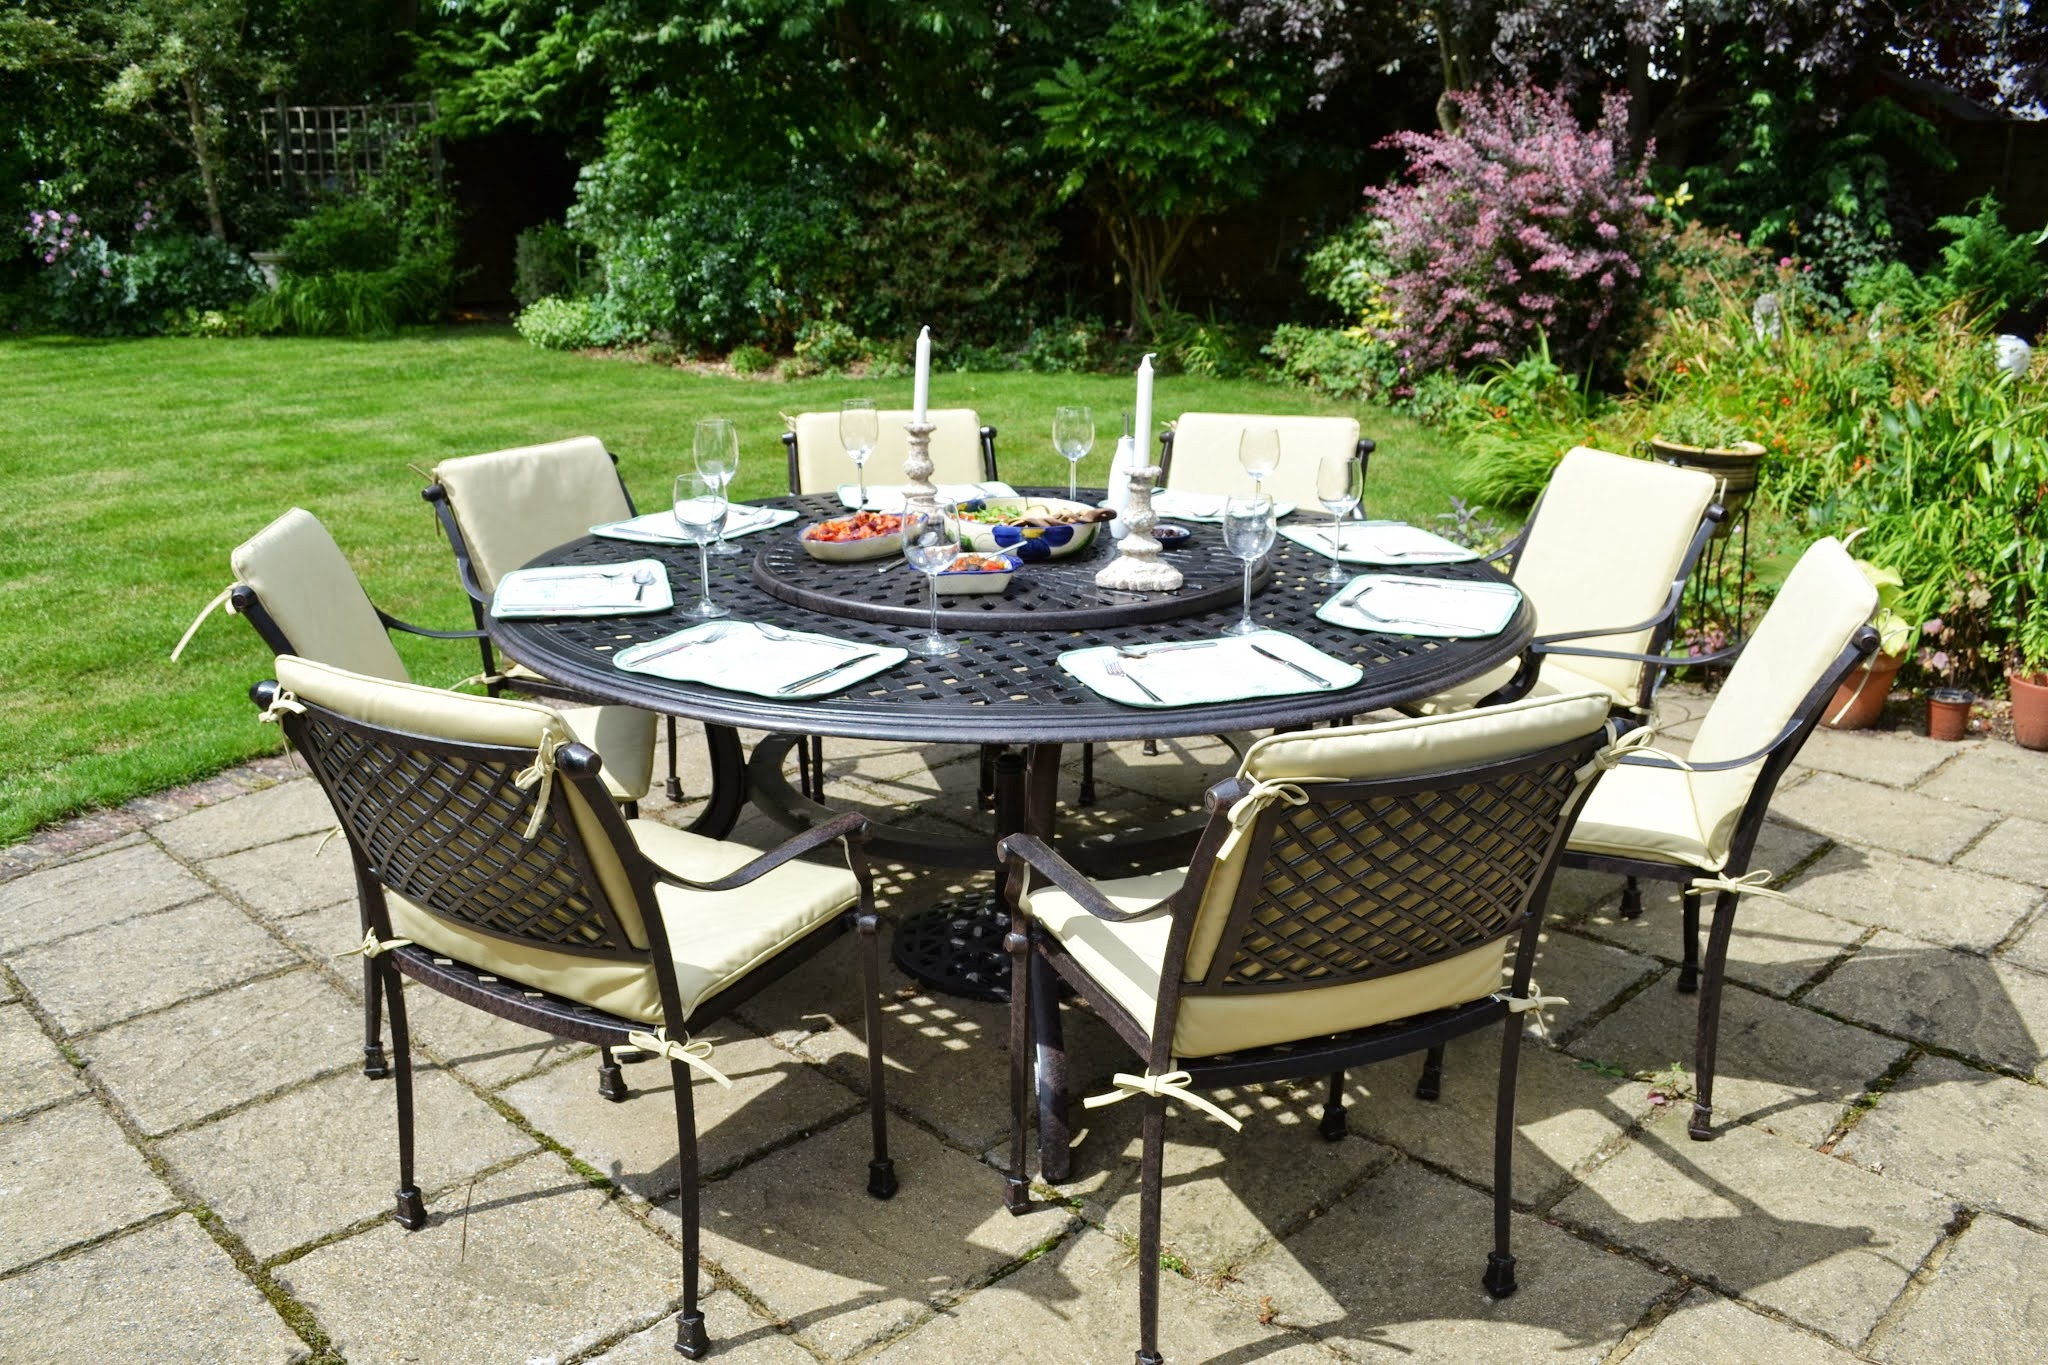 Comparatif tables de jardin plateau tournant le blog - Grande table ronde de jardin ...